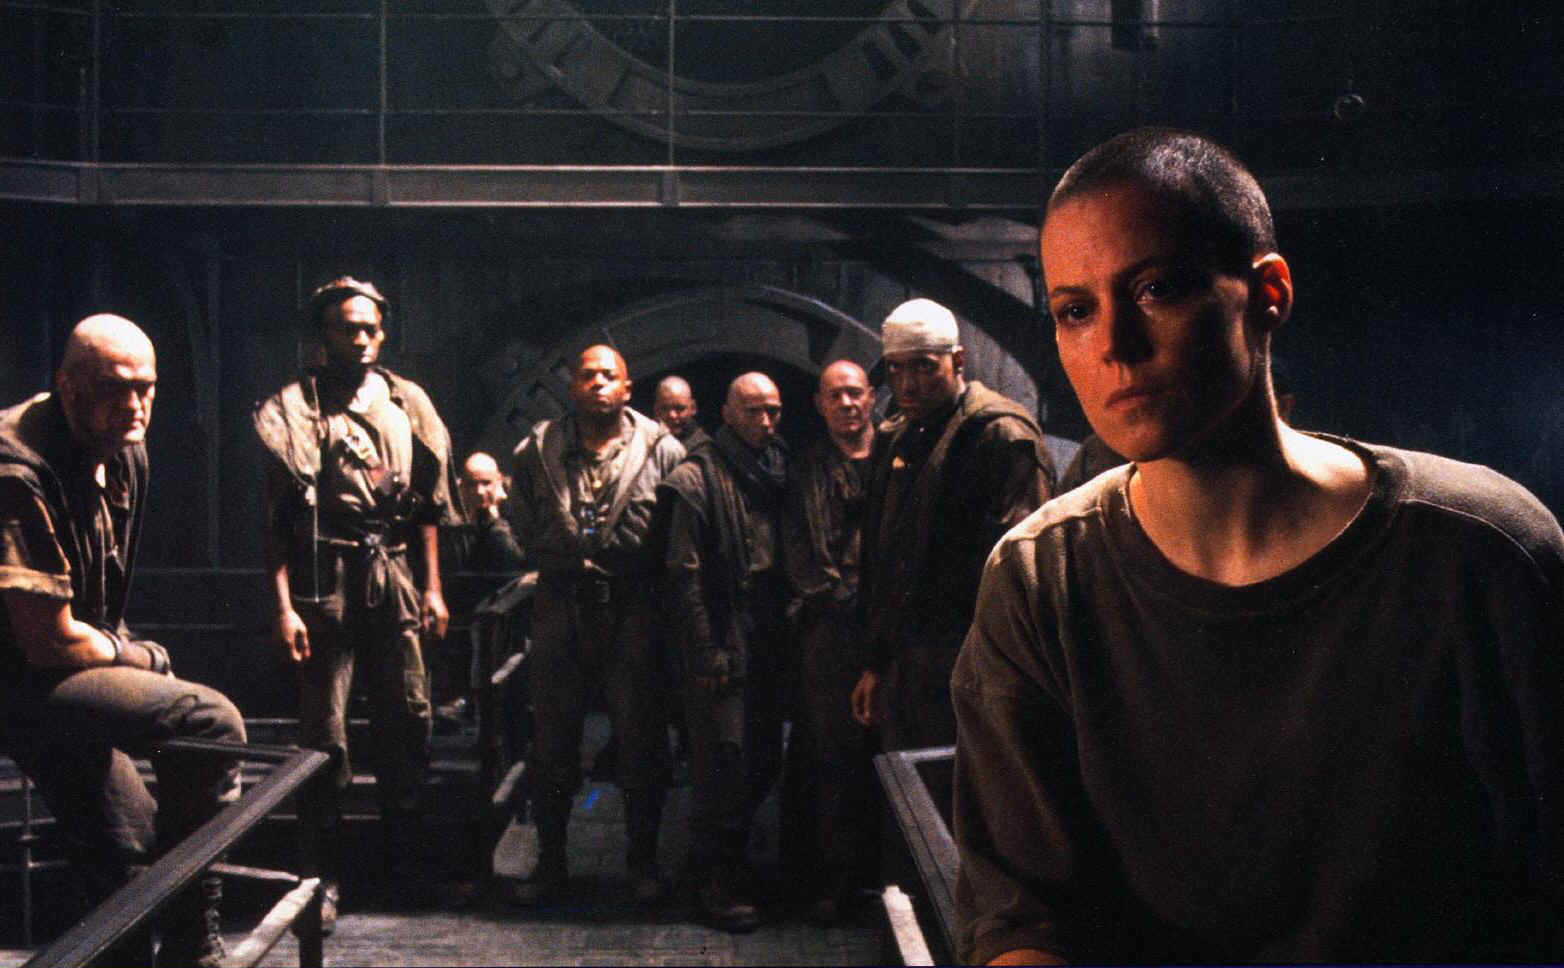 Ripley (Sigourney Weaver) (front right) and the prisoners of Fiorina 161 in Alien3 (1992)